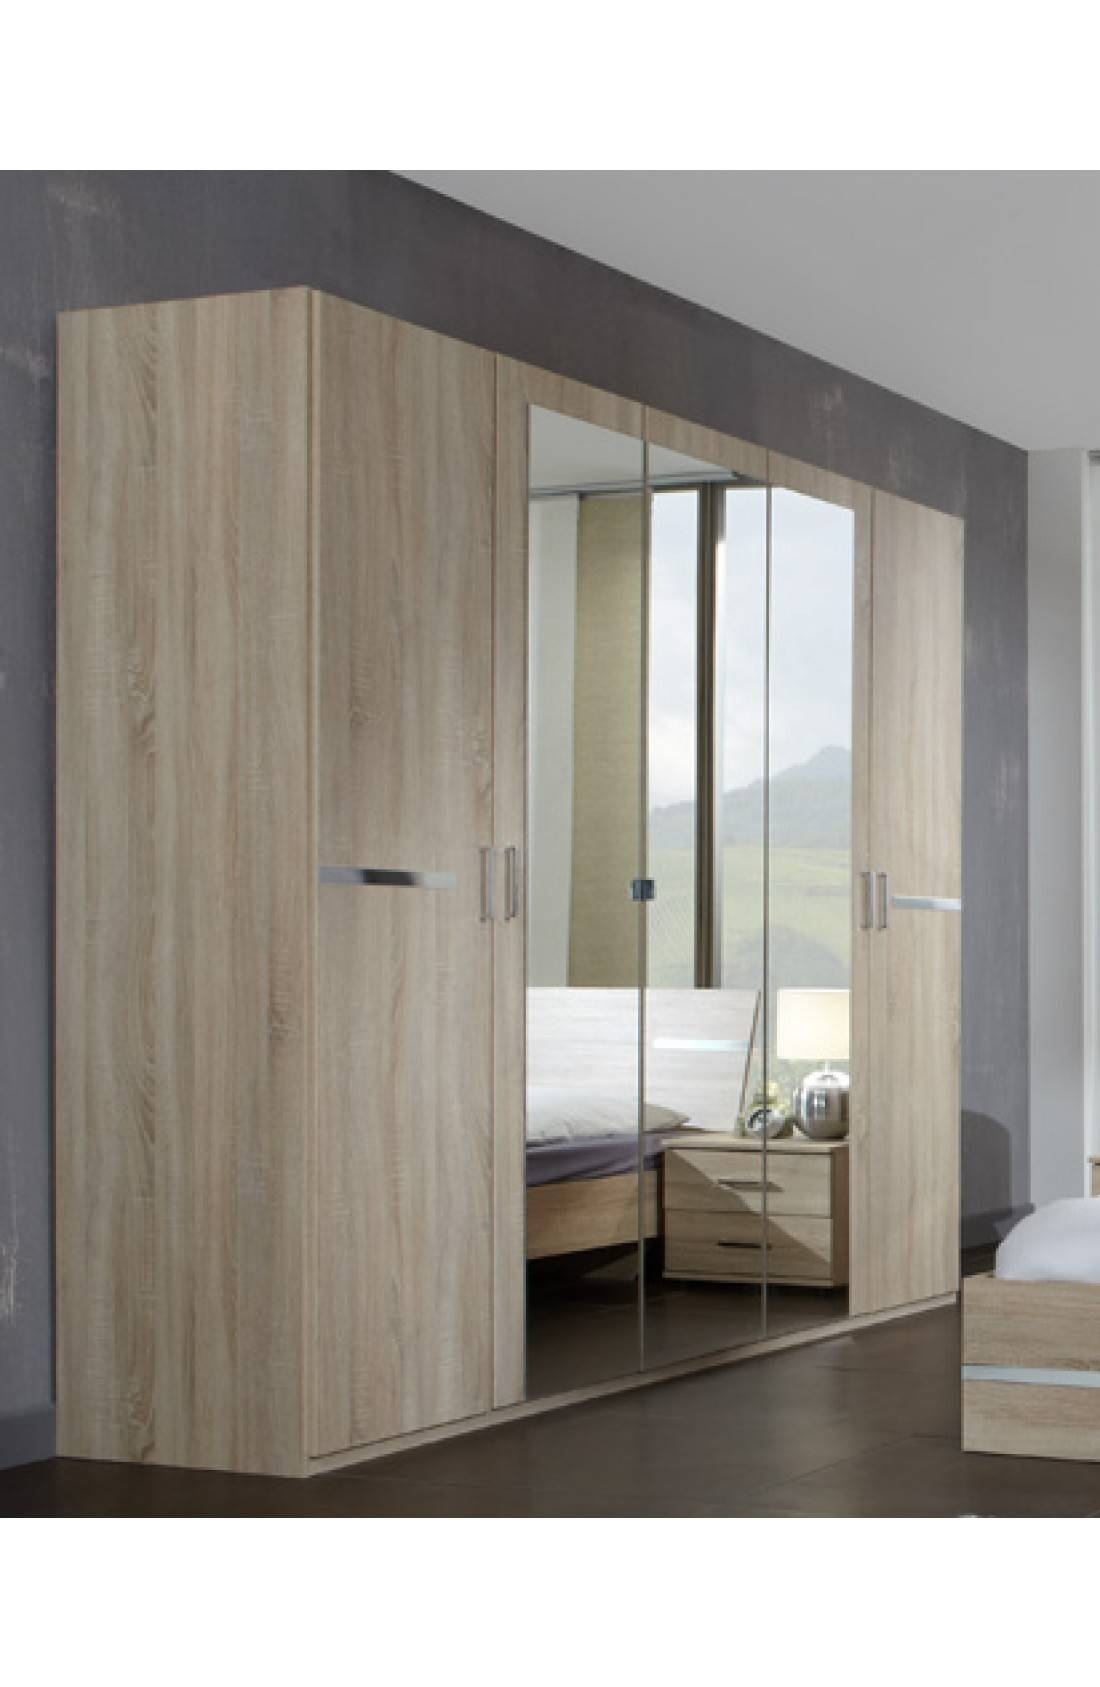 Slumberhaus 'anna' Modern Light Oak 225Cm 5 Door Wardrobe with regard to 5 Door Mirrored Wardrobes (Image 15 of 15)